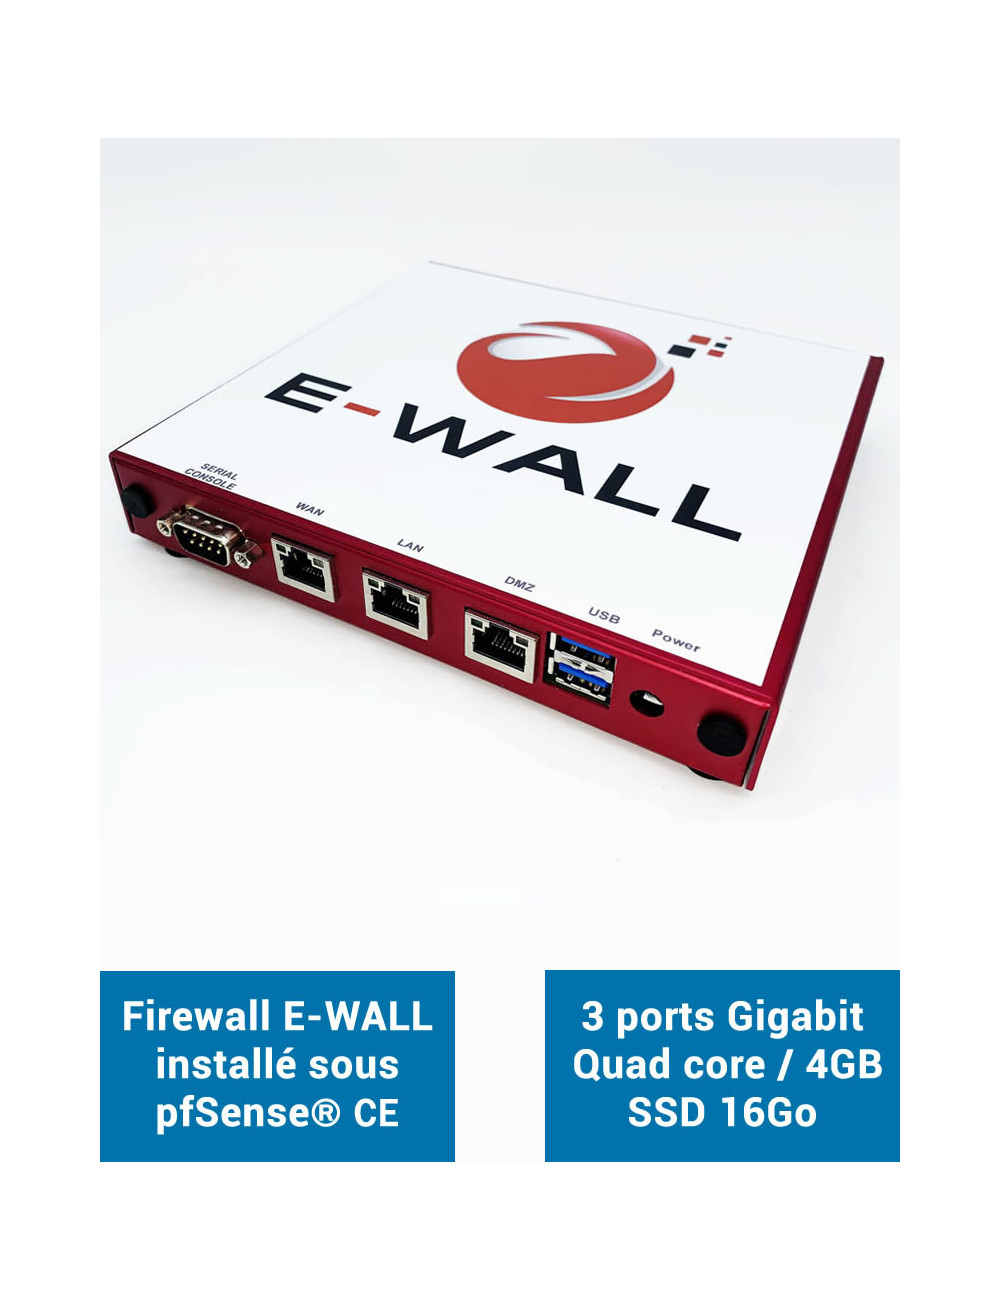 Firewall E-WALL AP234 under pfSense® CE 3 ports 4GB SSD 16GB